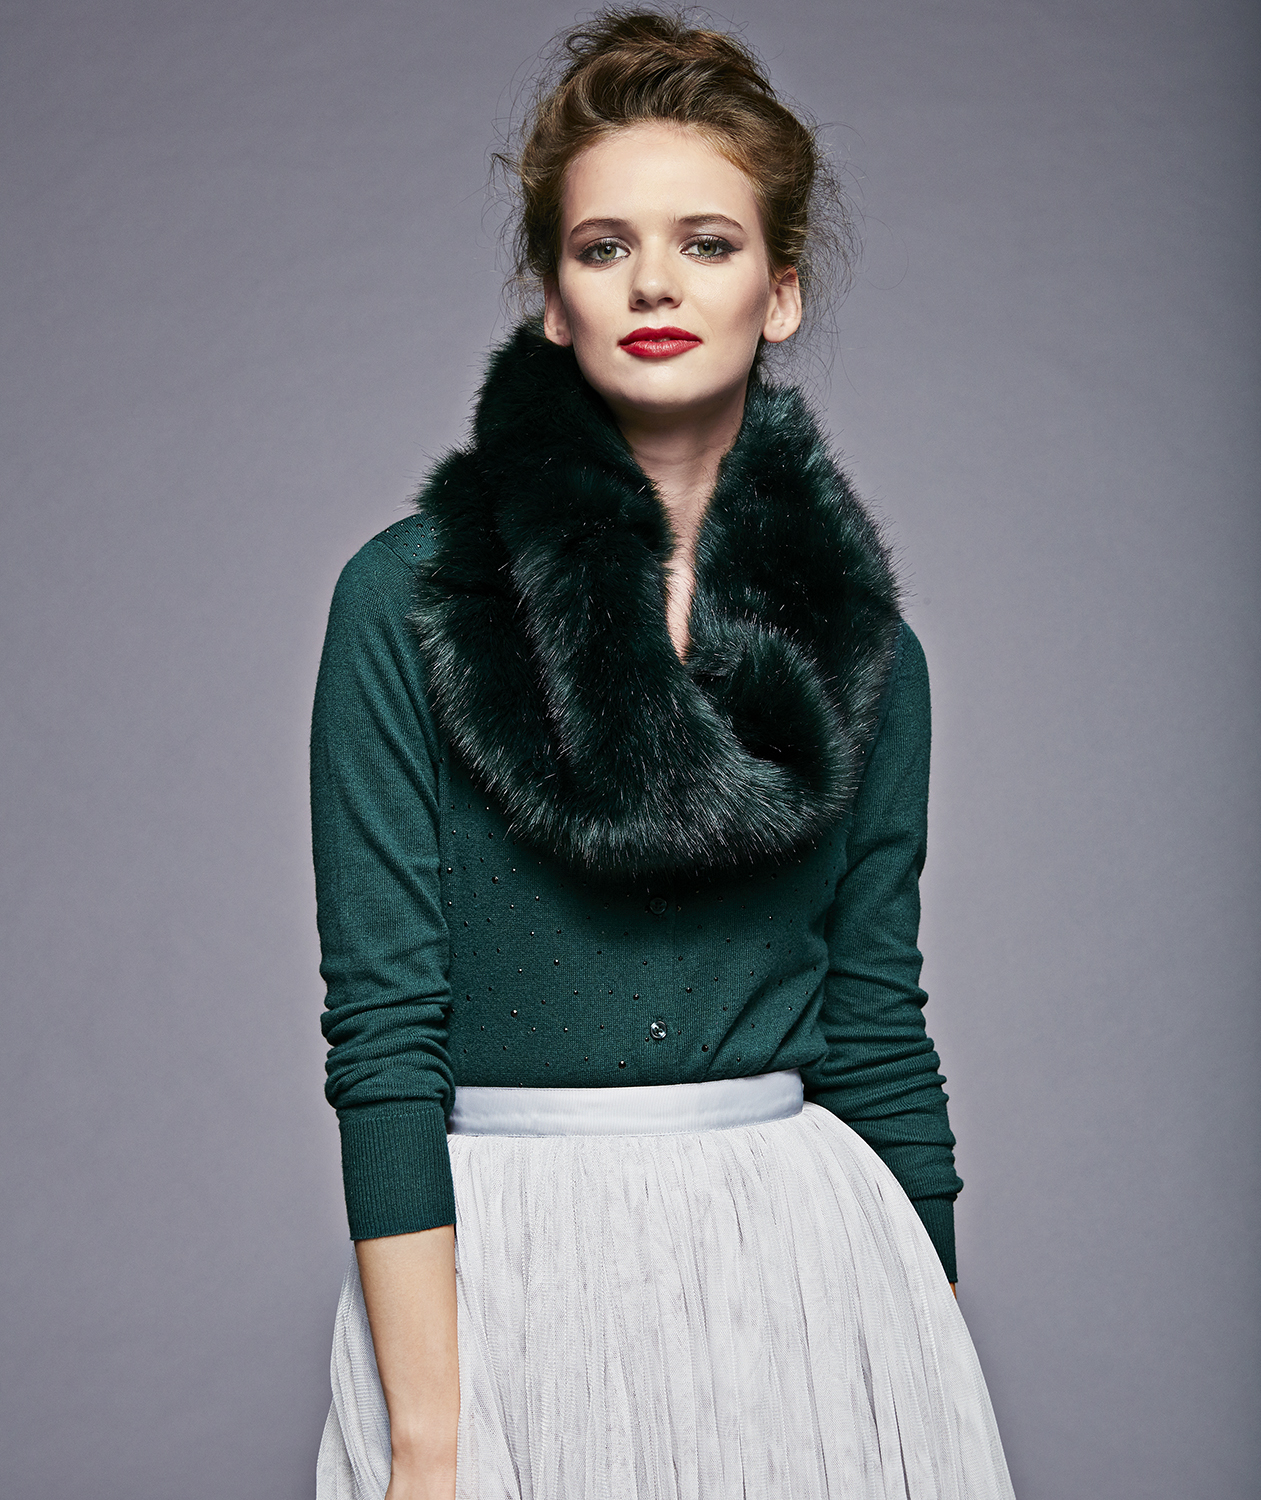 Model with green faux fur stole and cardigan